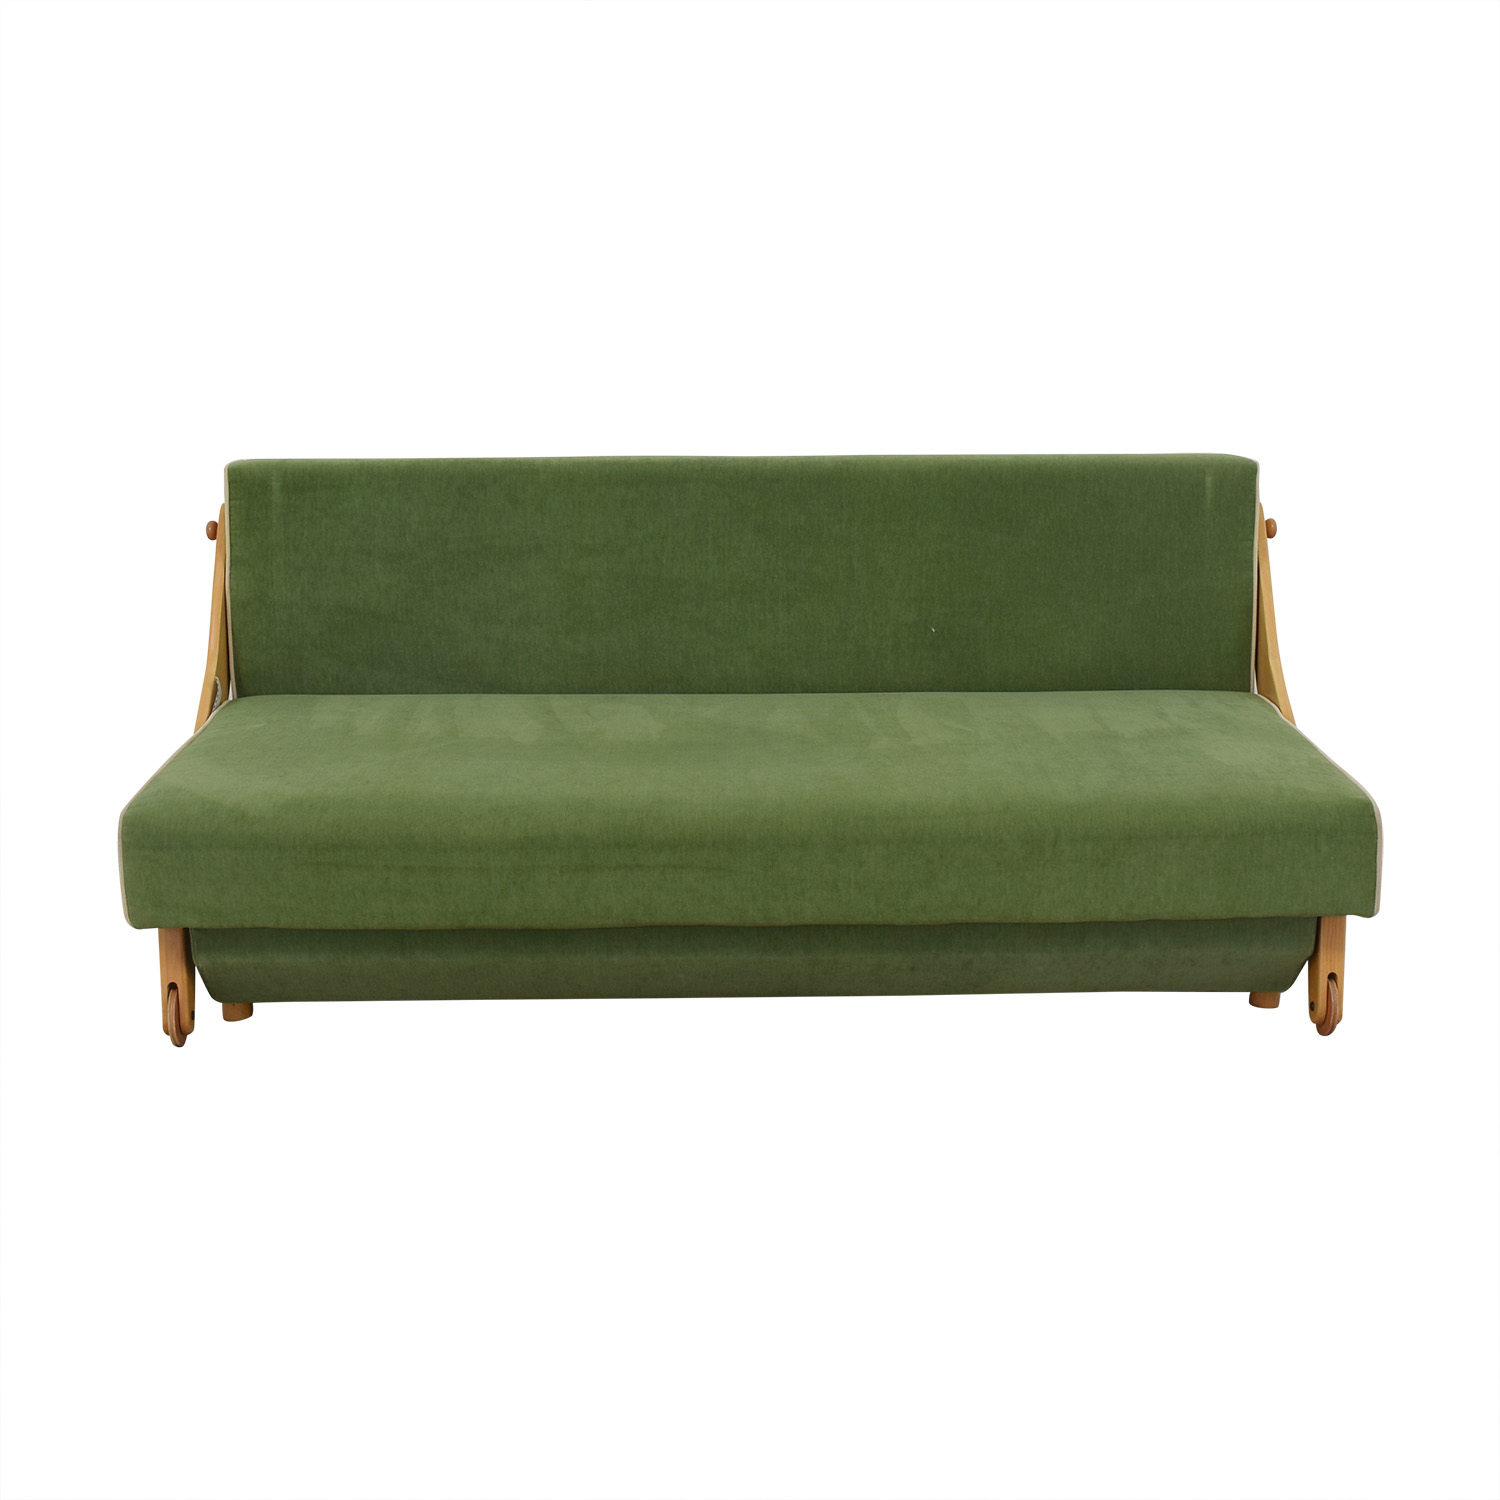 Reclining Sofa Bed with Storage for sale